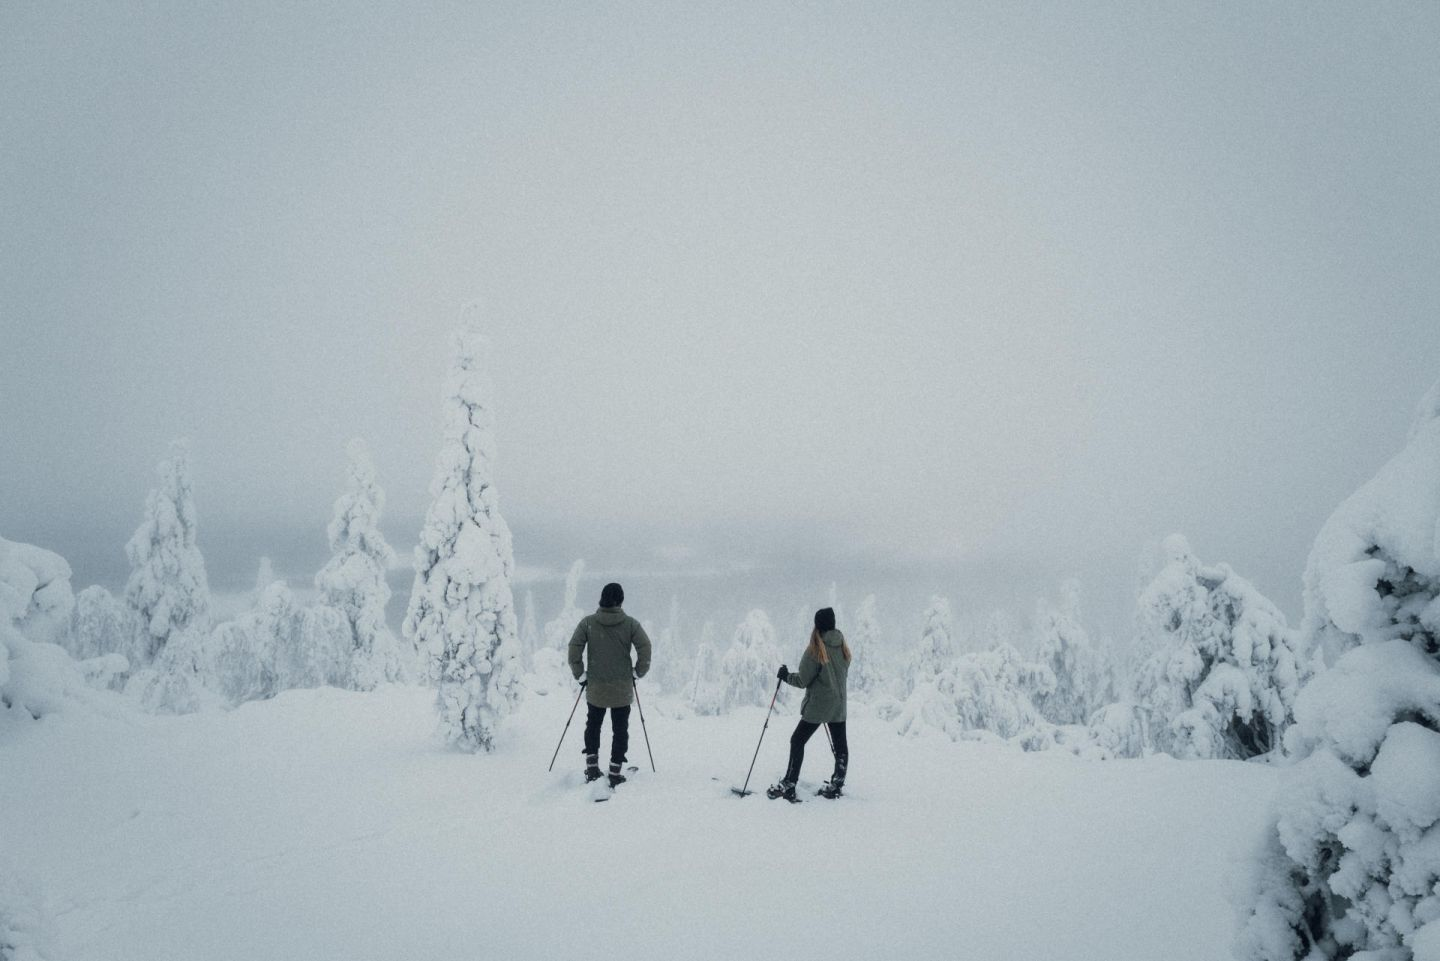 A snowy outing in Lapland, Europe's last wilderness